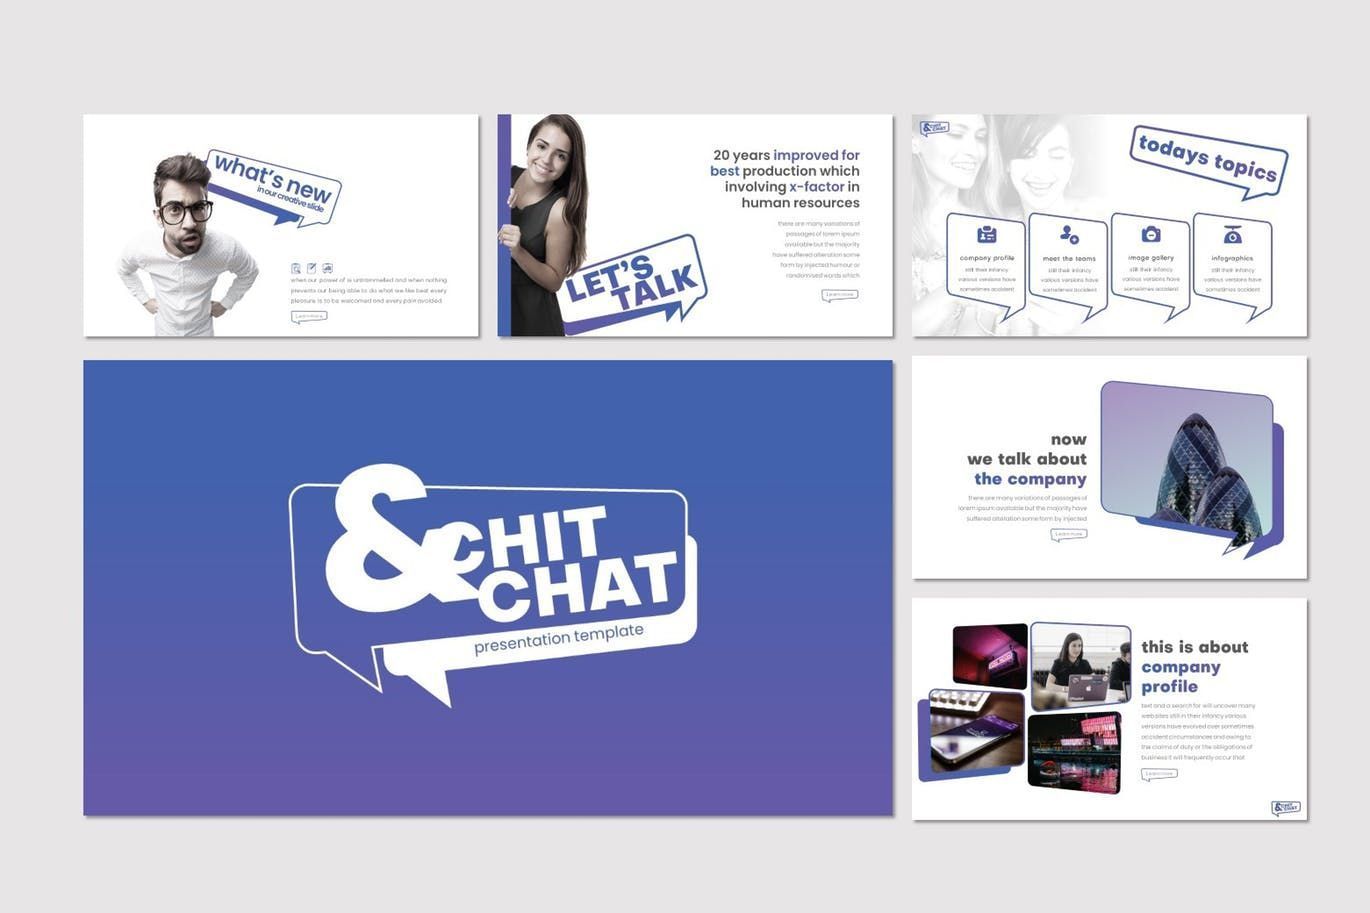 Chit Chat - PowerPoint Template, Slide 2, 07723, Presentation Templates — PoweredTemplate.com